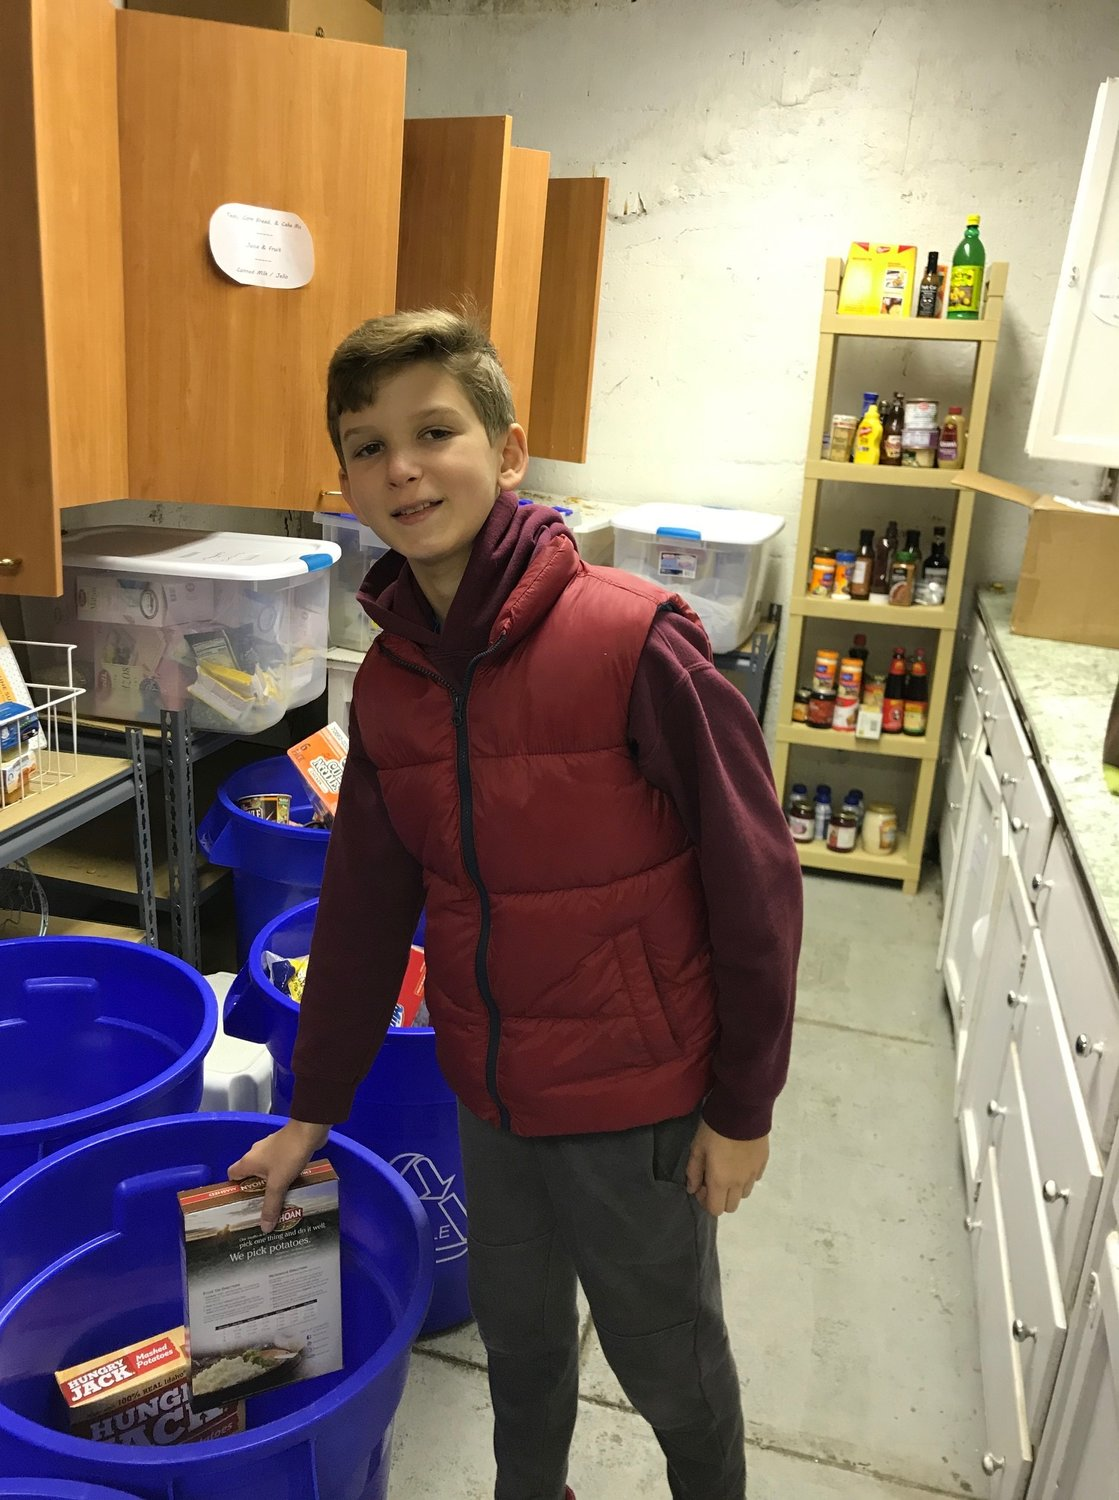 Gregory Nemirov, 12, is taking the time to help Sea Cliff's Mutual Concern Committee stock its food pantry for seniors in need.C